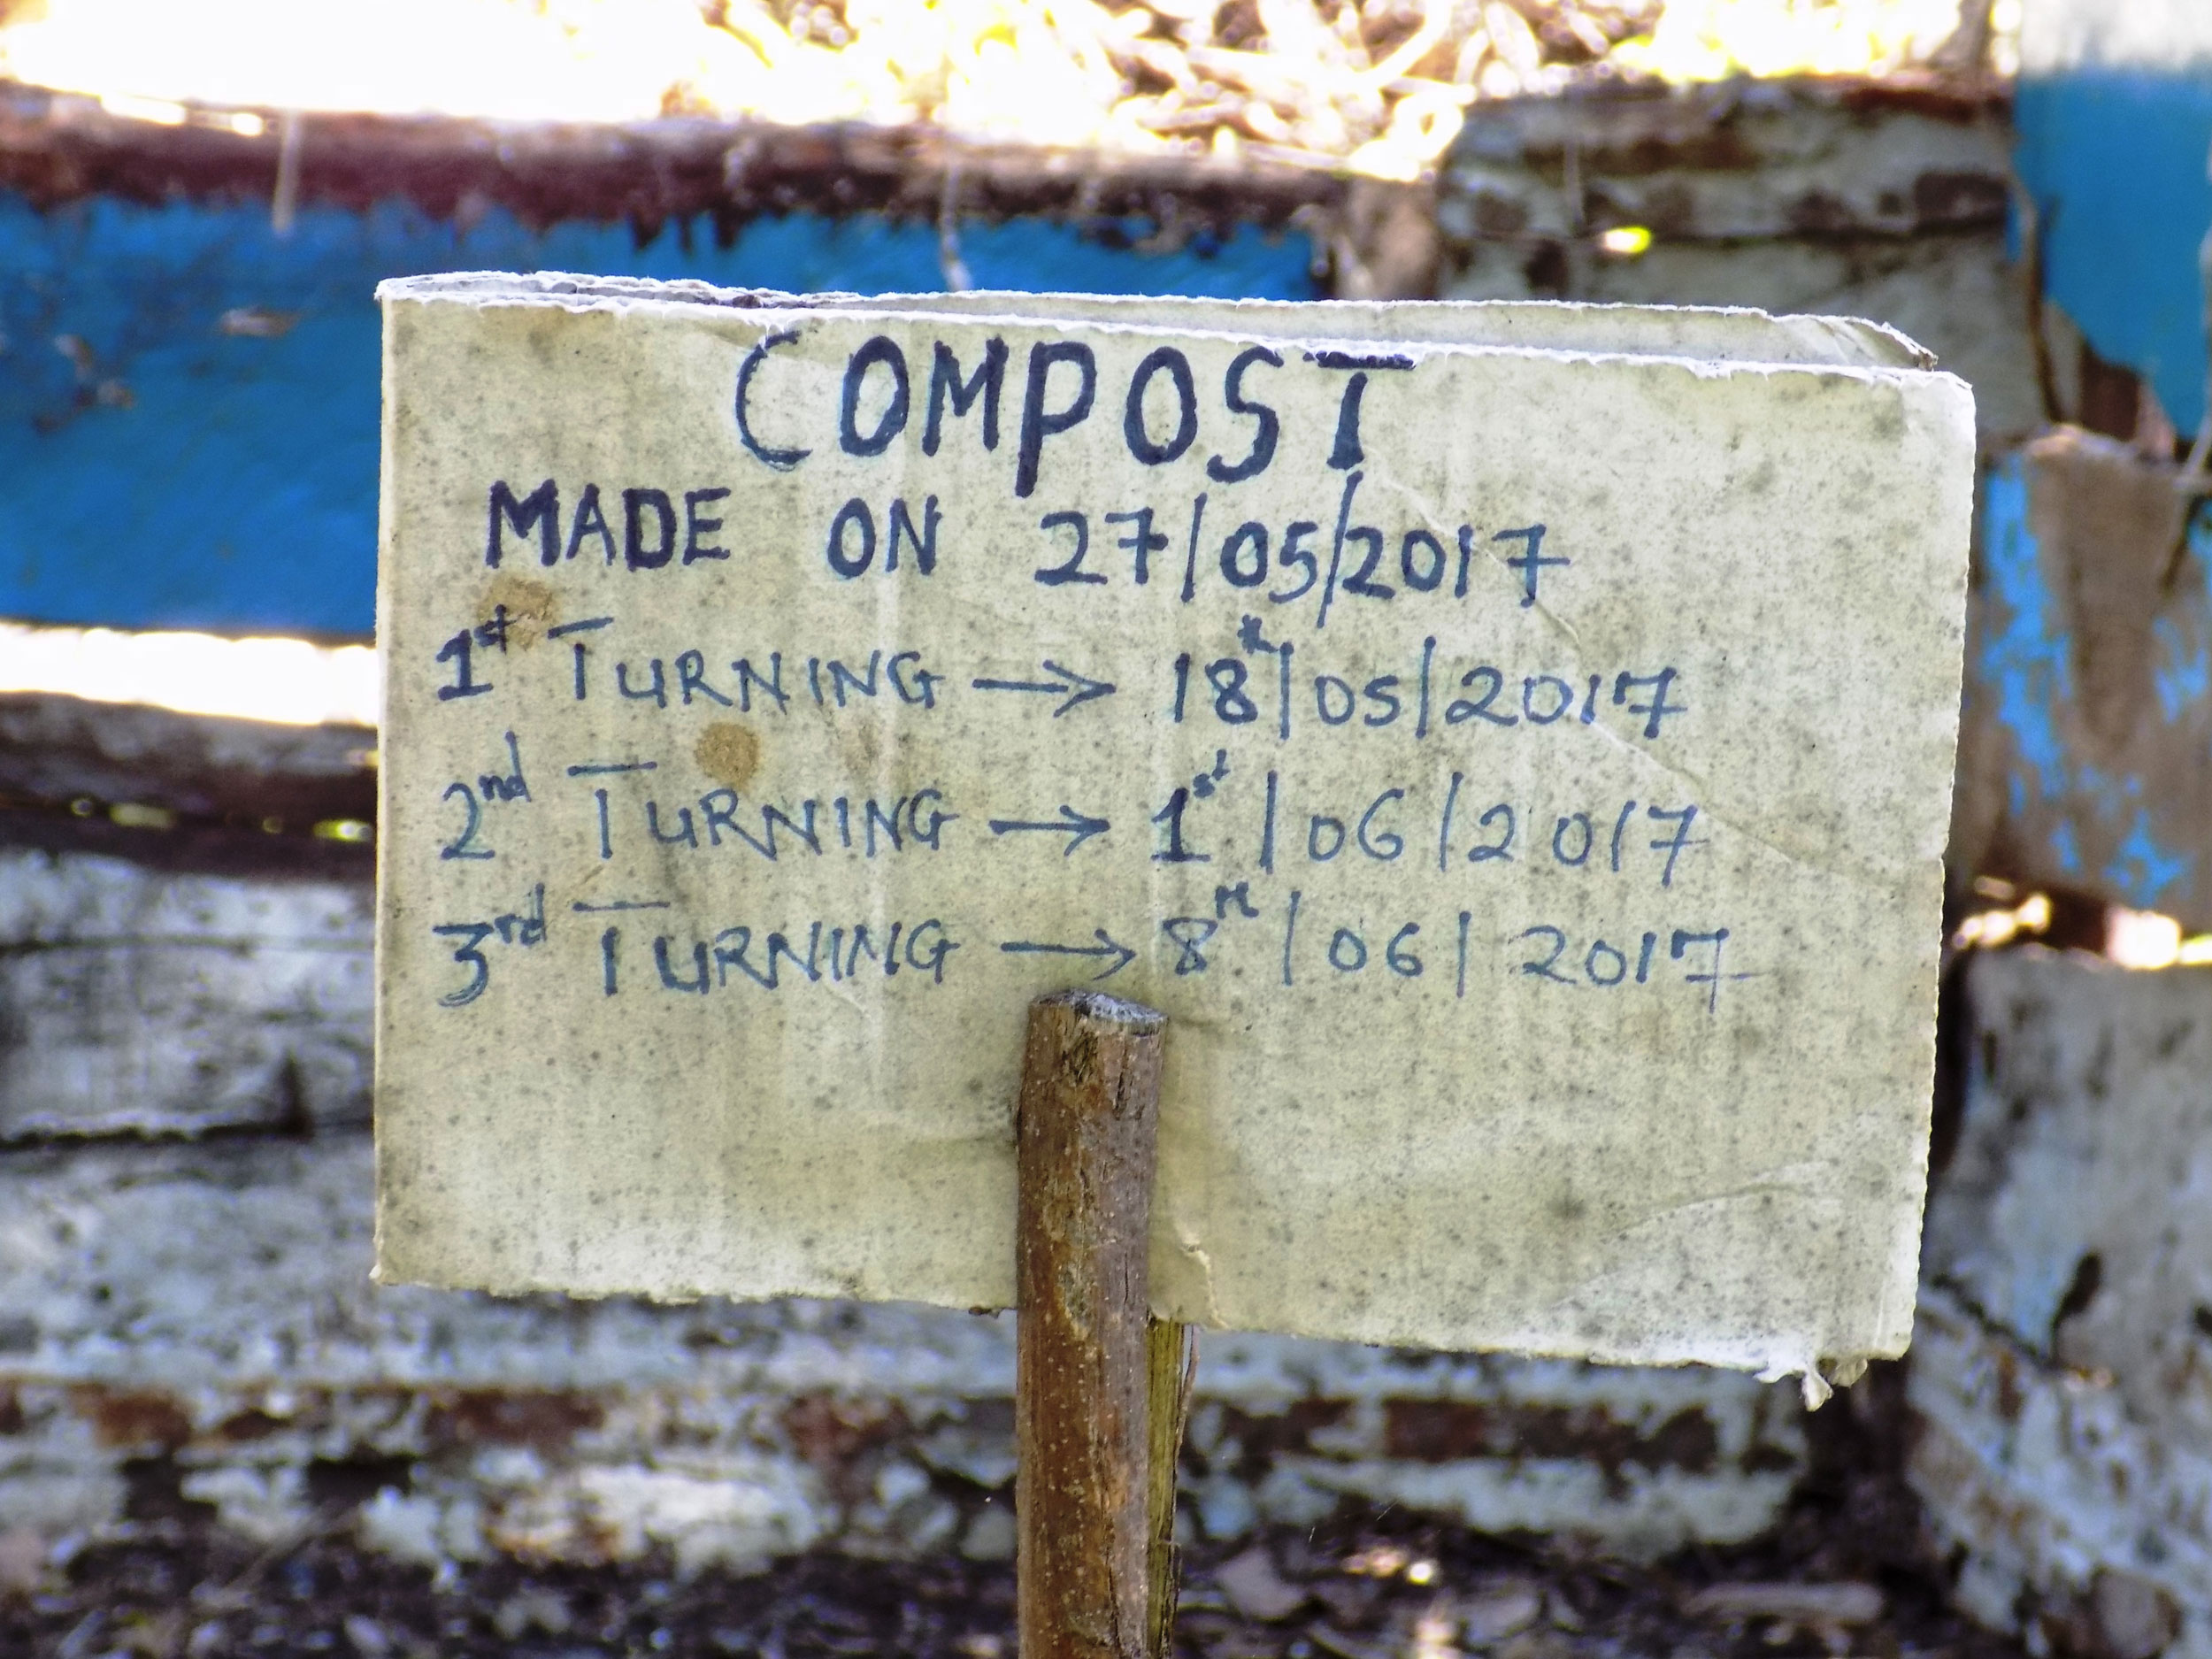 Compost makes healthy soils